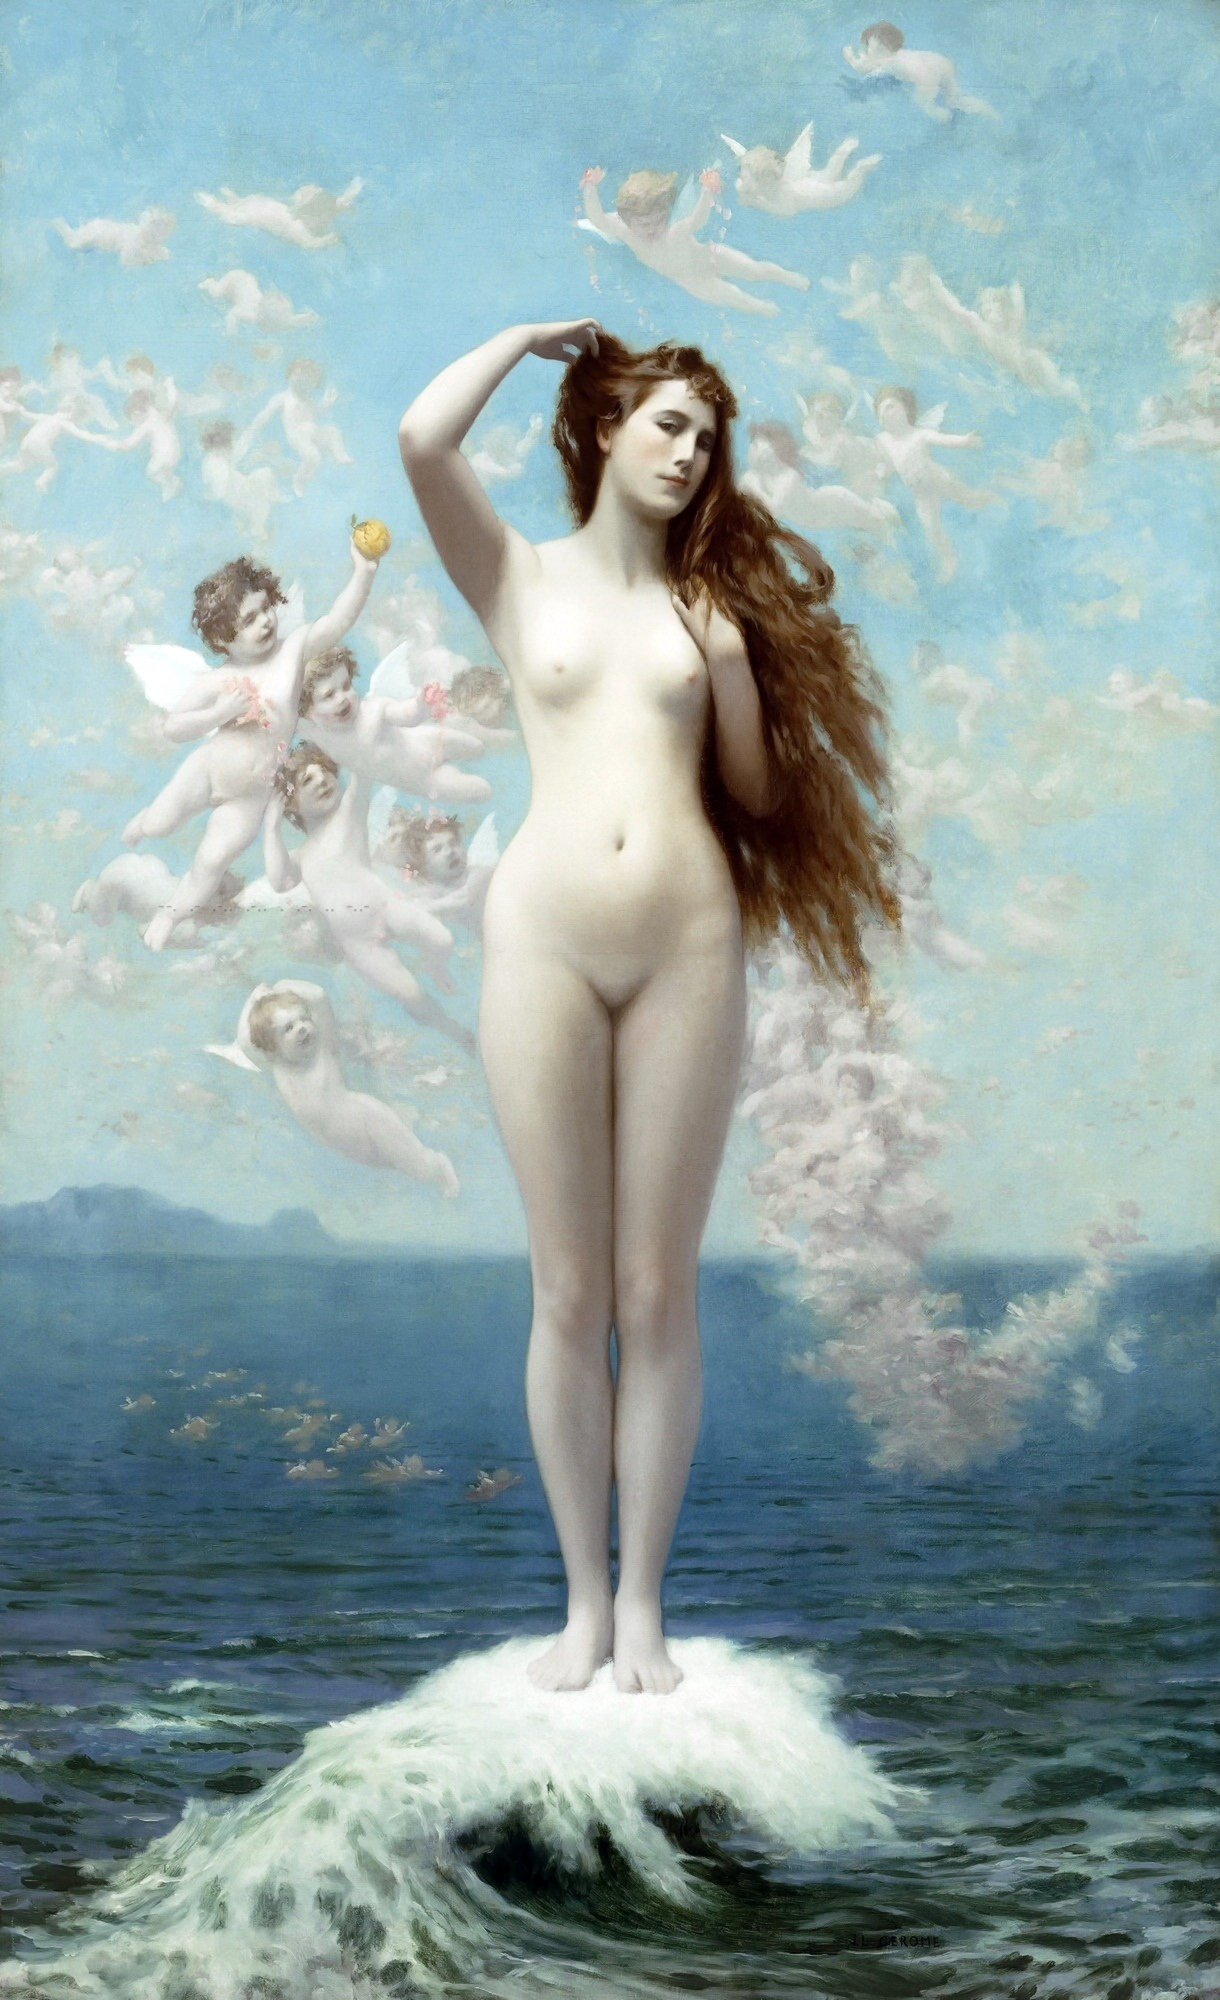 https://upload.wikimedia.org/wikipedia/commons/7/7a/Gerome_venus.jpg